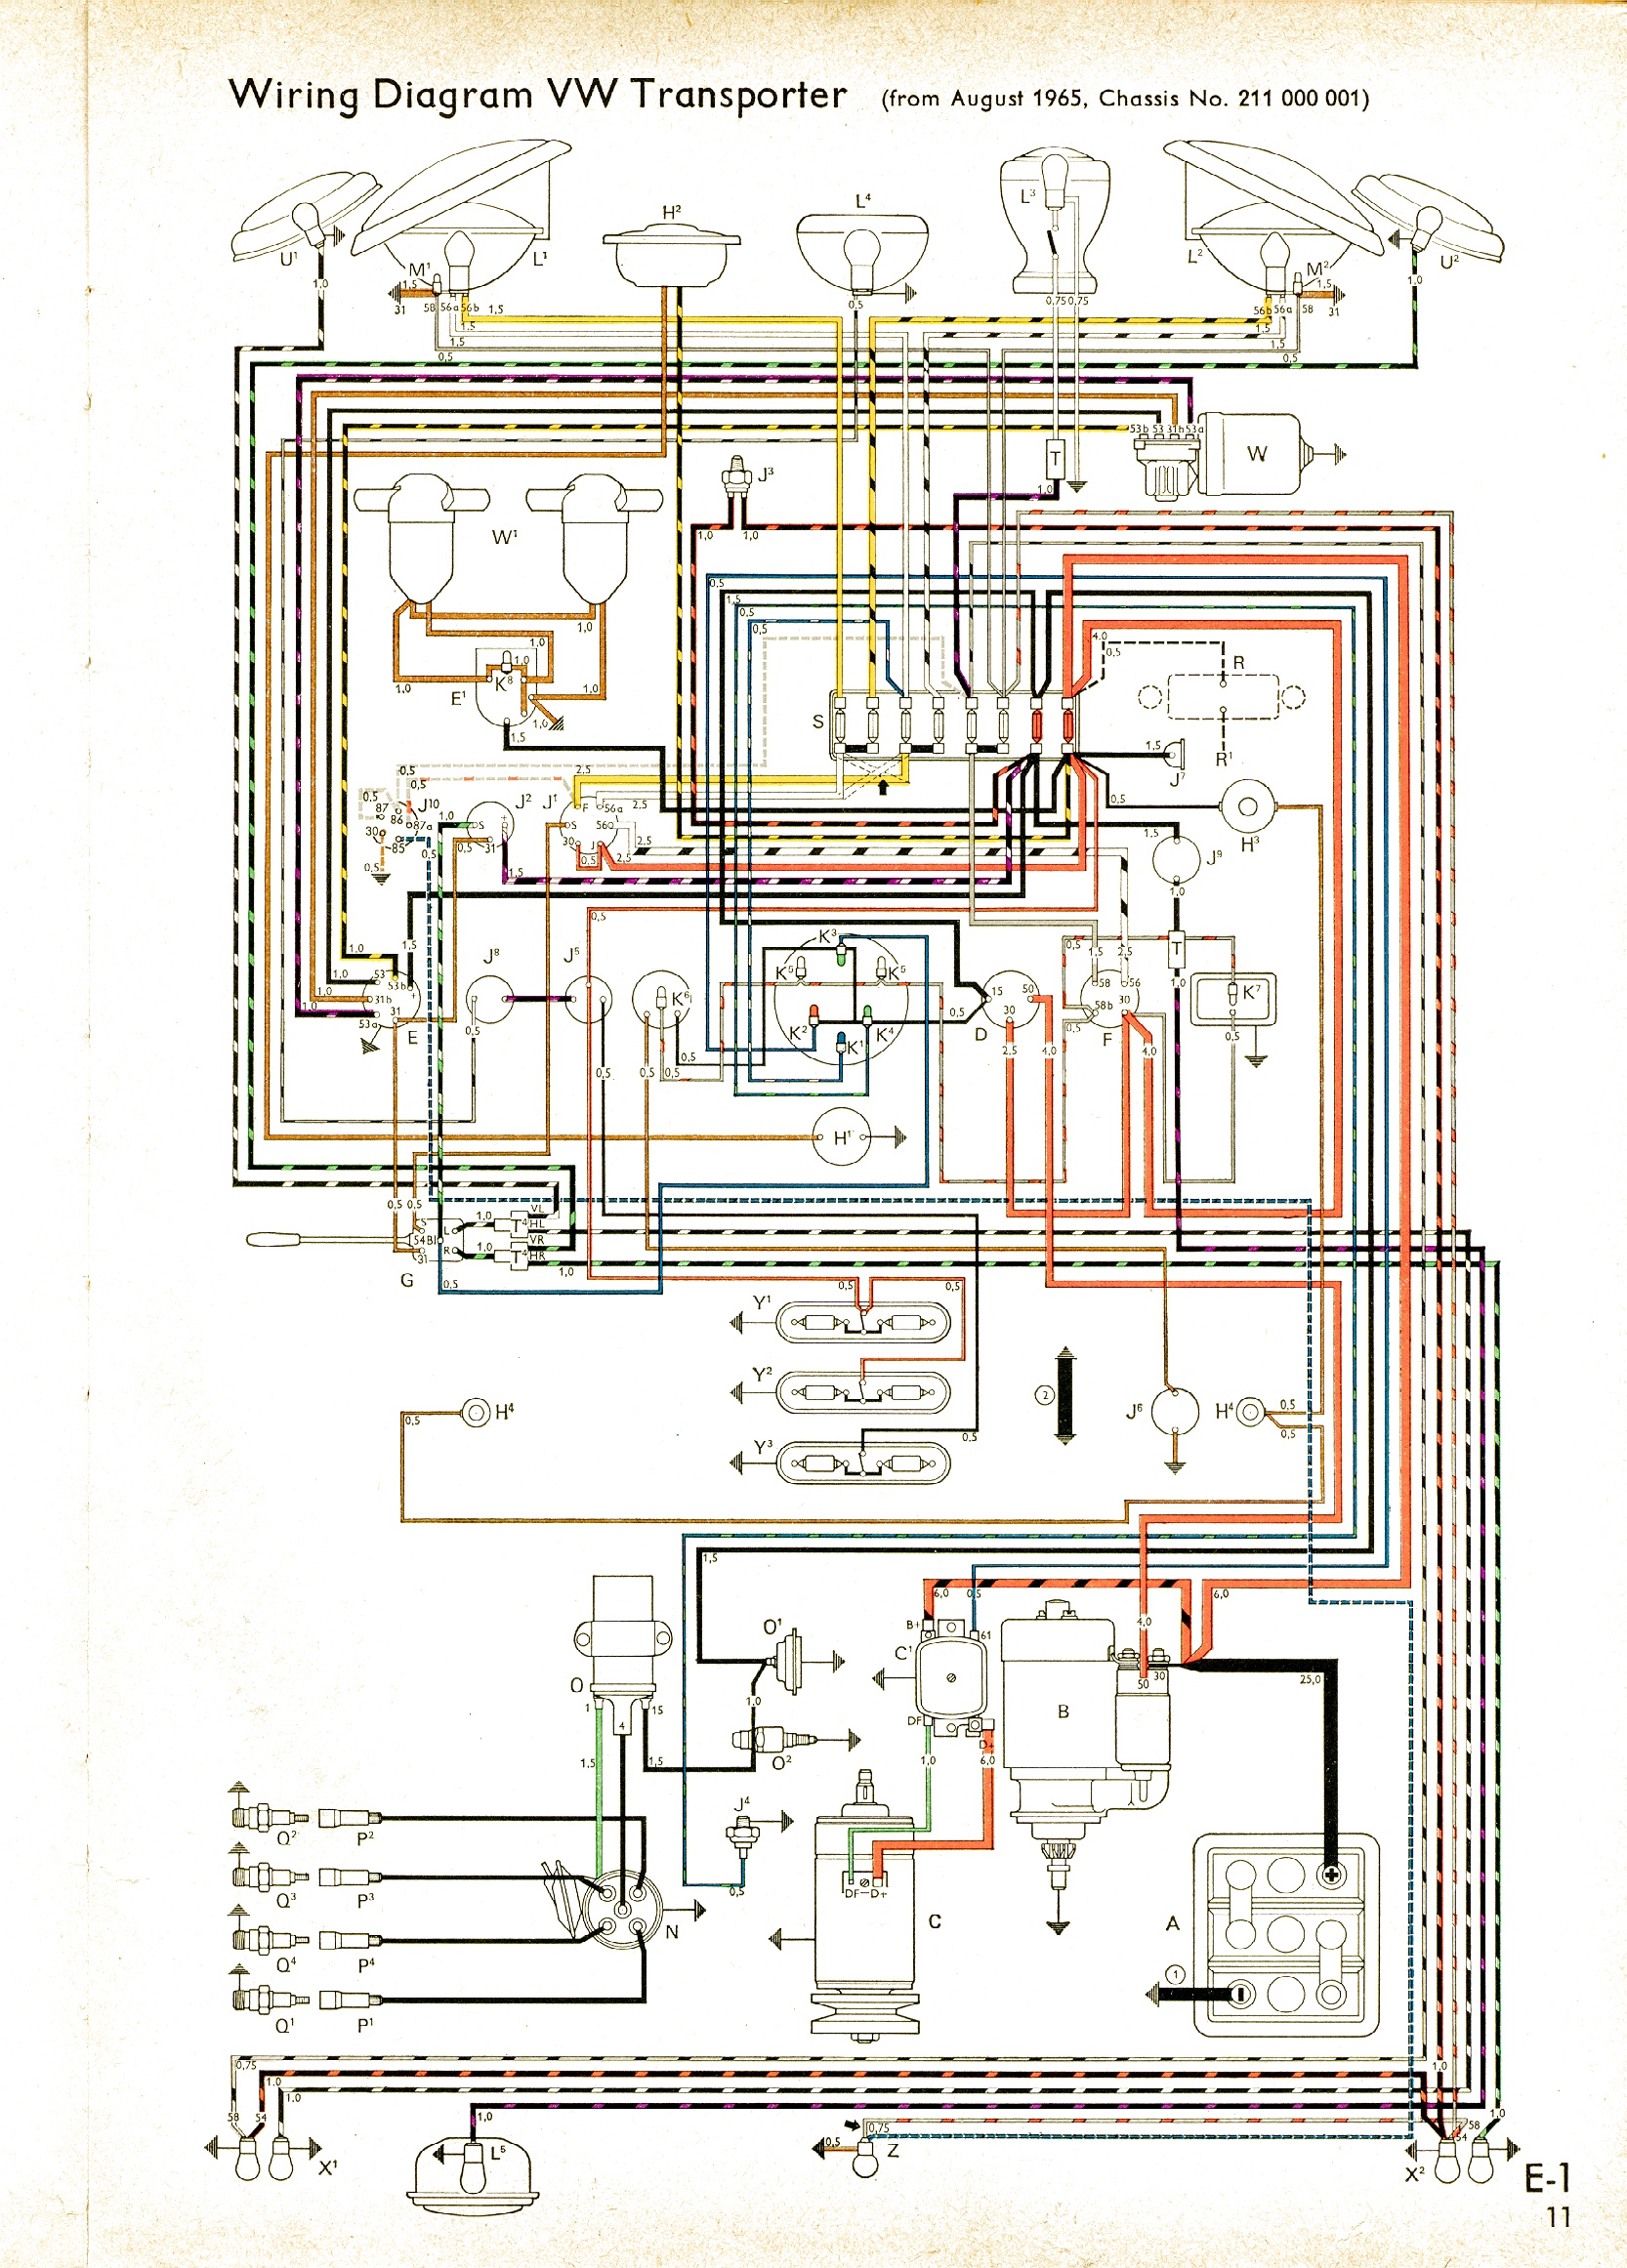 Vw Bug Headlight Wiring Diagram 2001 - Wiring Diagram Schematics  Vw Beetle Engine Wiring Diagram on alfa romeo spider wiring diagram, volkswagen fuel diagram, 1963 vw wiring diagram, vw buggy wiring-diagram, vw beetle engine diagram, vw rabbit wiring-diagram, vw turn signal wiring diagram, 1967 vw wiring diagram, vw type 2 wiring diagram, vw starter wiring diagram, 1974 vw engine diagram, fiat uno wiring diagram, porsche cayenne wiring diagram, vw distributor diagram, 68 vw wiring diagram, vw beetle fuel injection diagram, 1999 vw passat wiring diagram, 1973 vw wiring diagram, type 3 wiring diagram, vw light switch wiring,